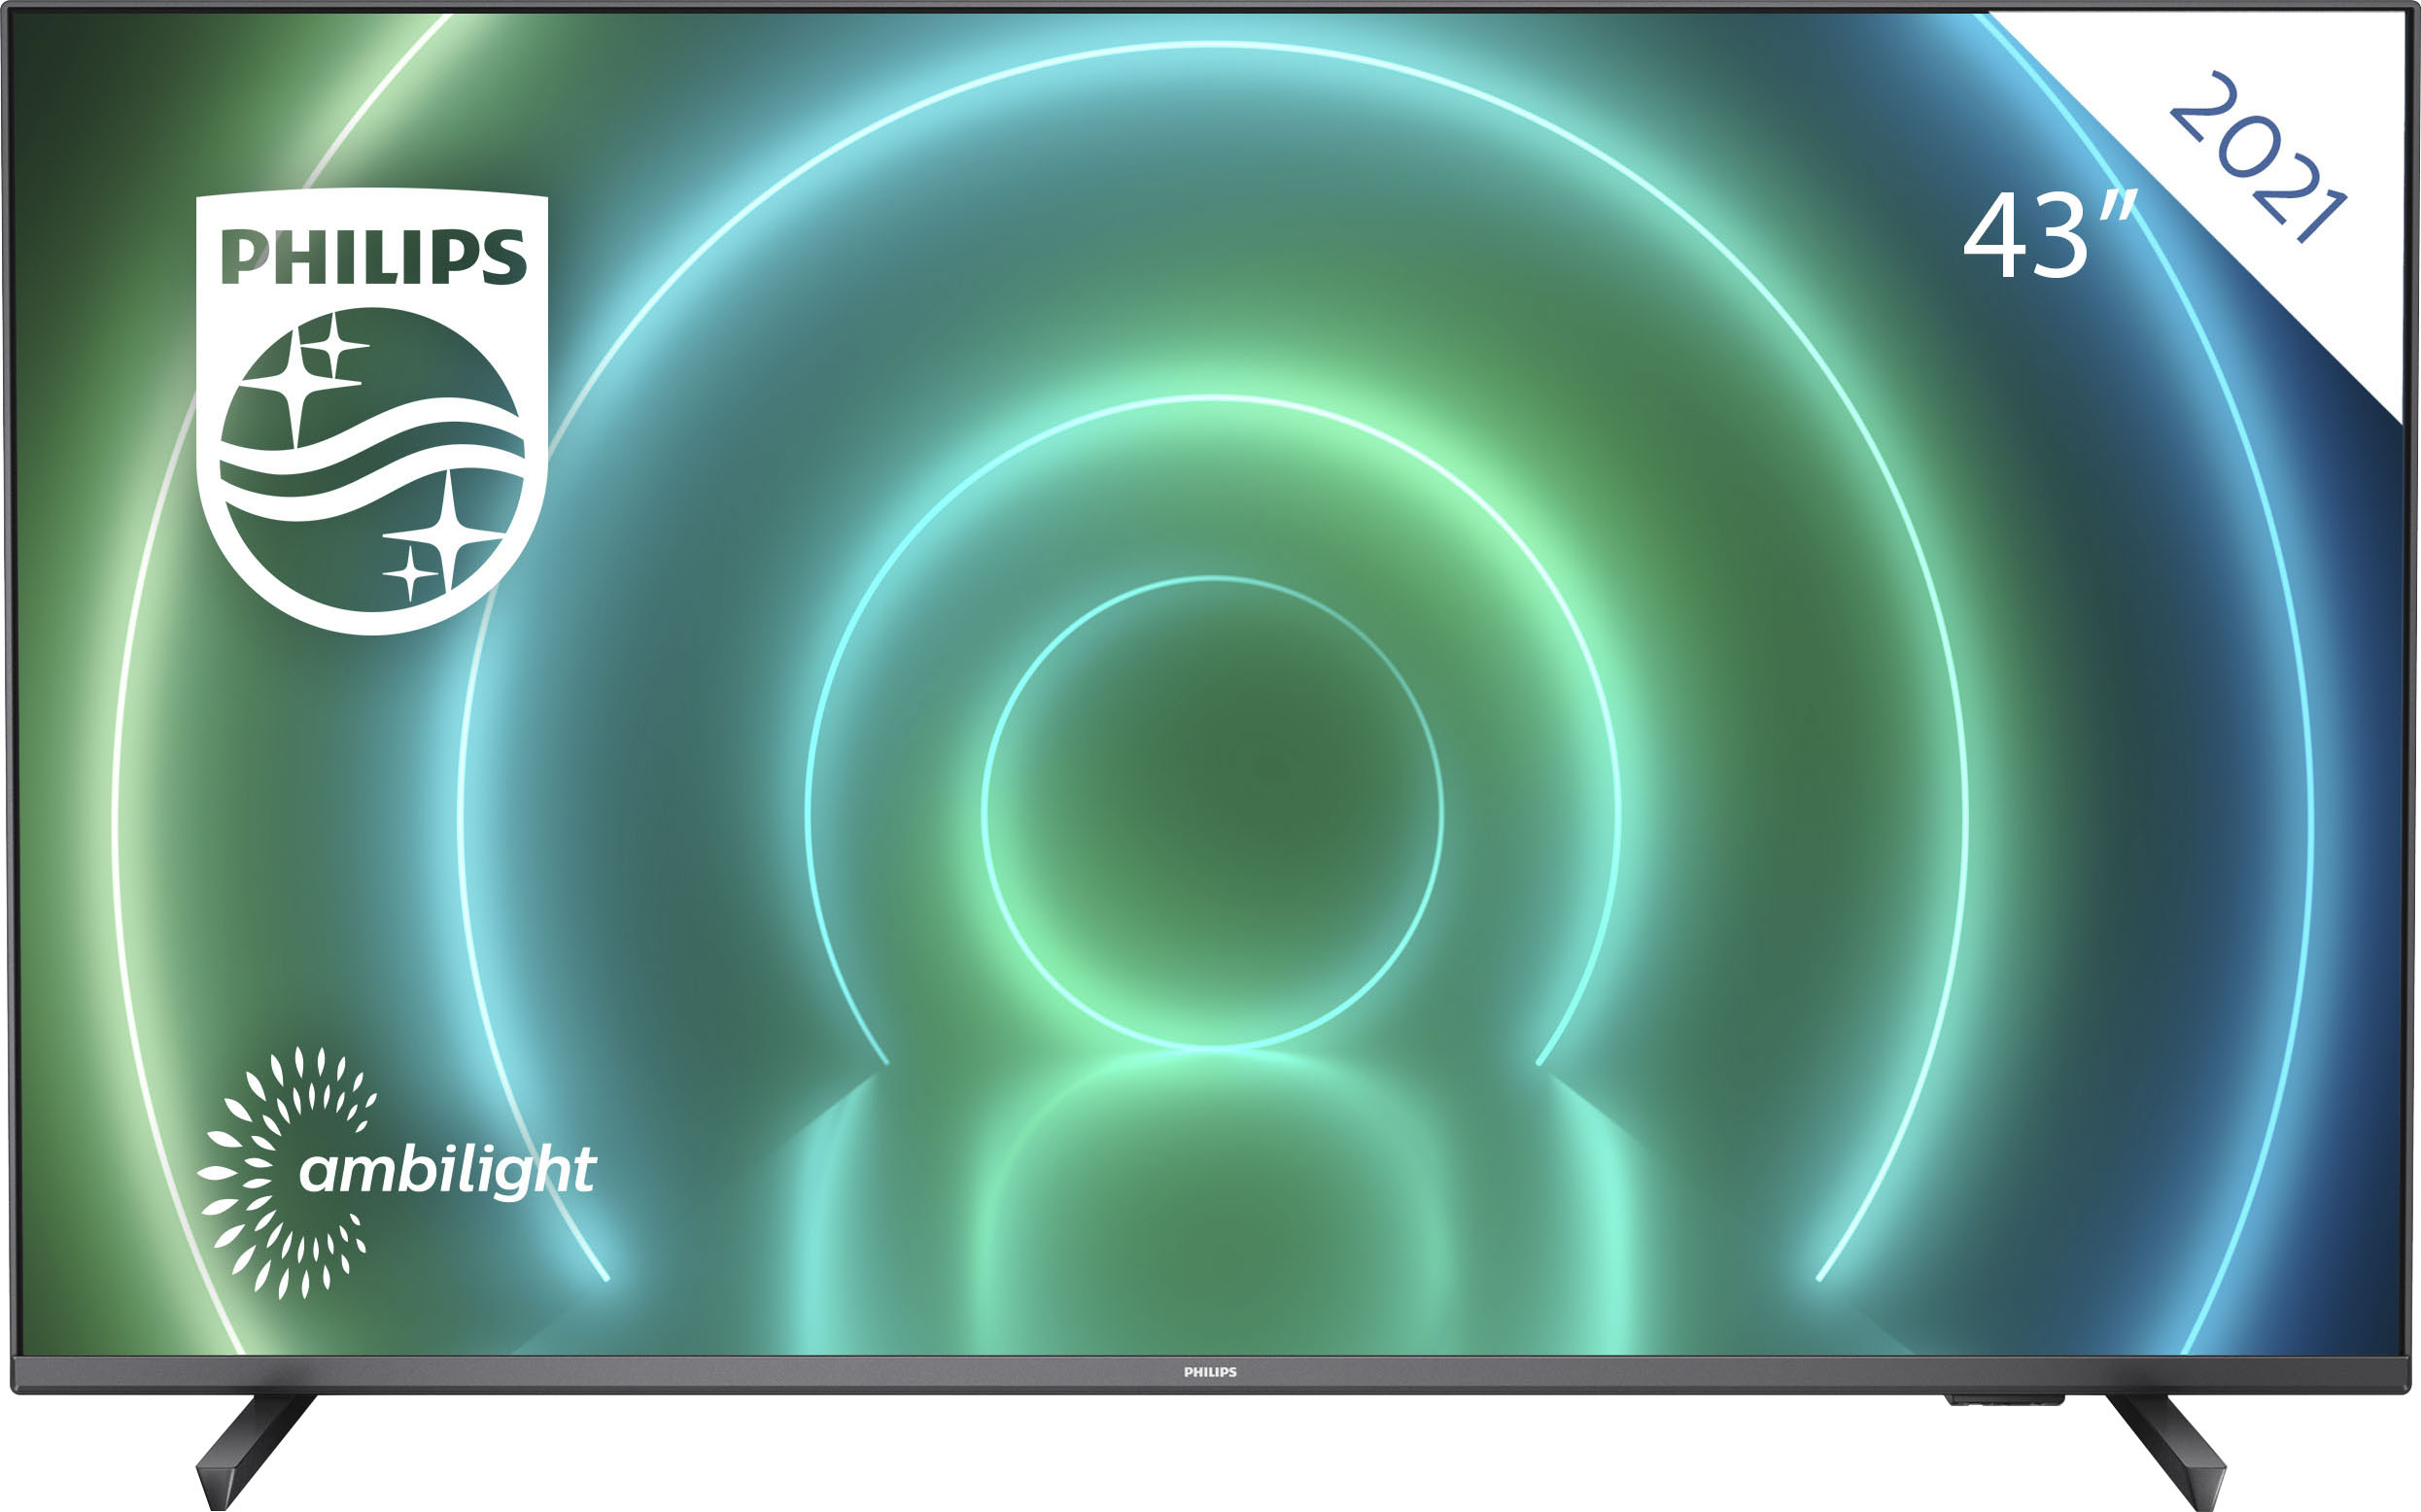 Philips LED-Fernseher 43PUS7906 12 , 108 cm 43 , 4K Ultra HD, Android TV-Smart-TV